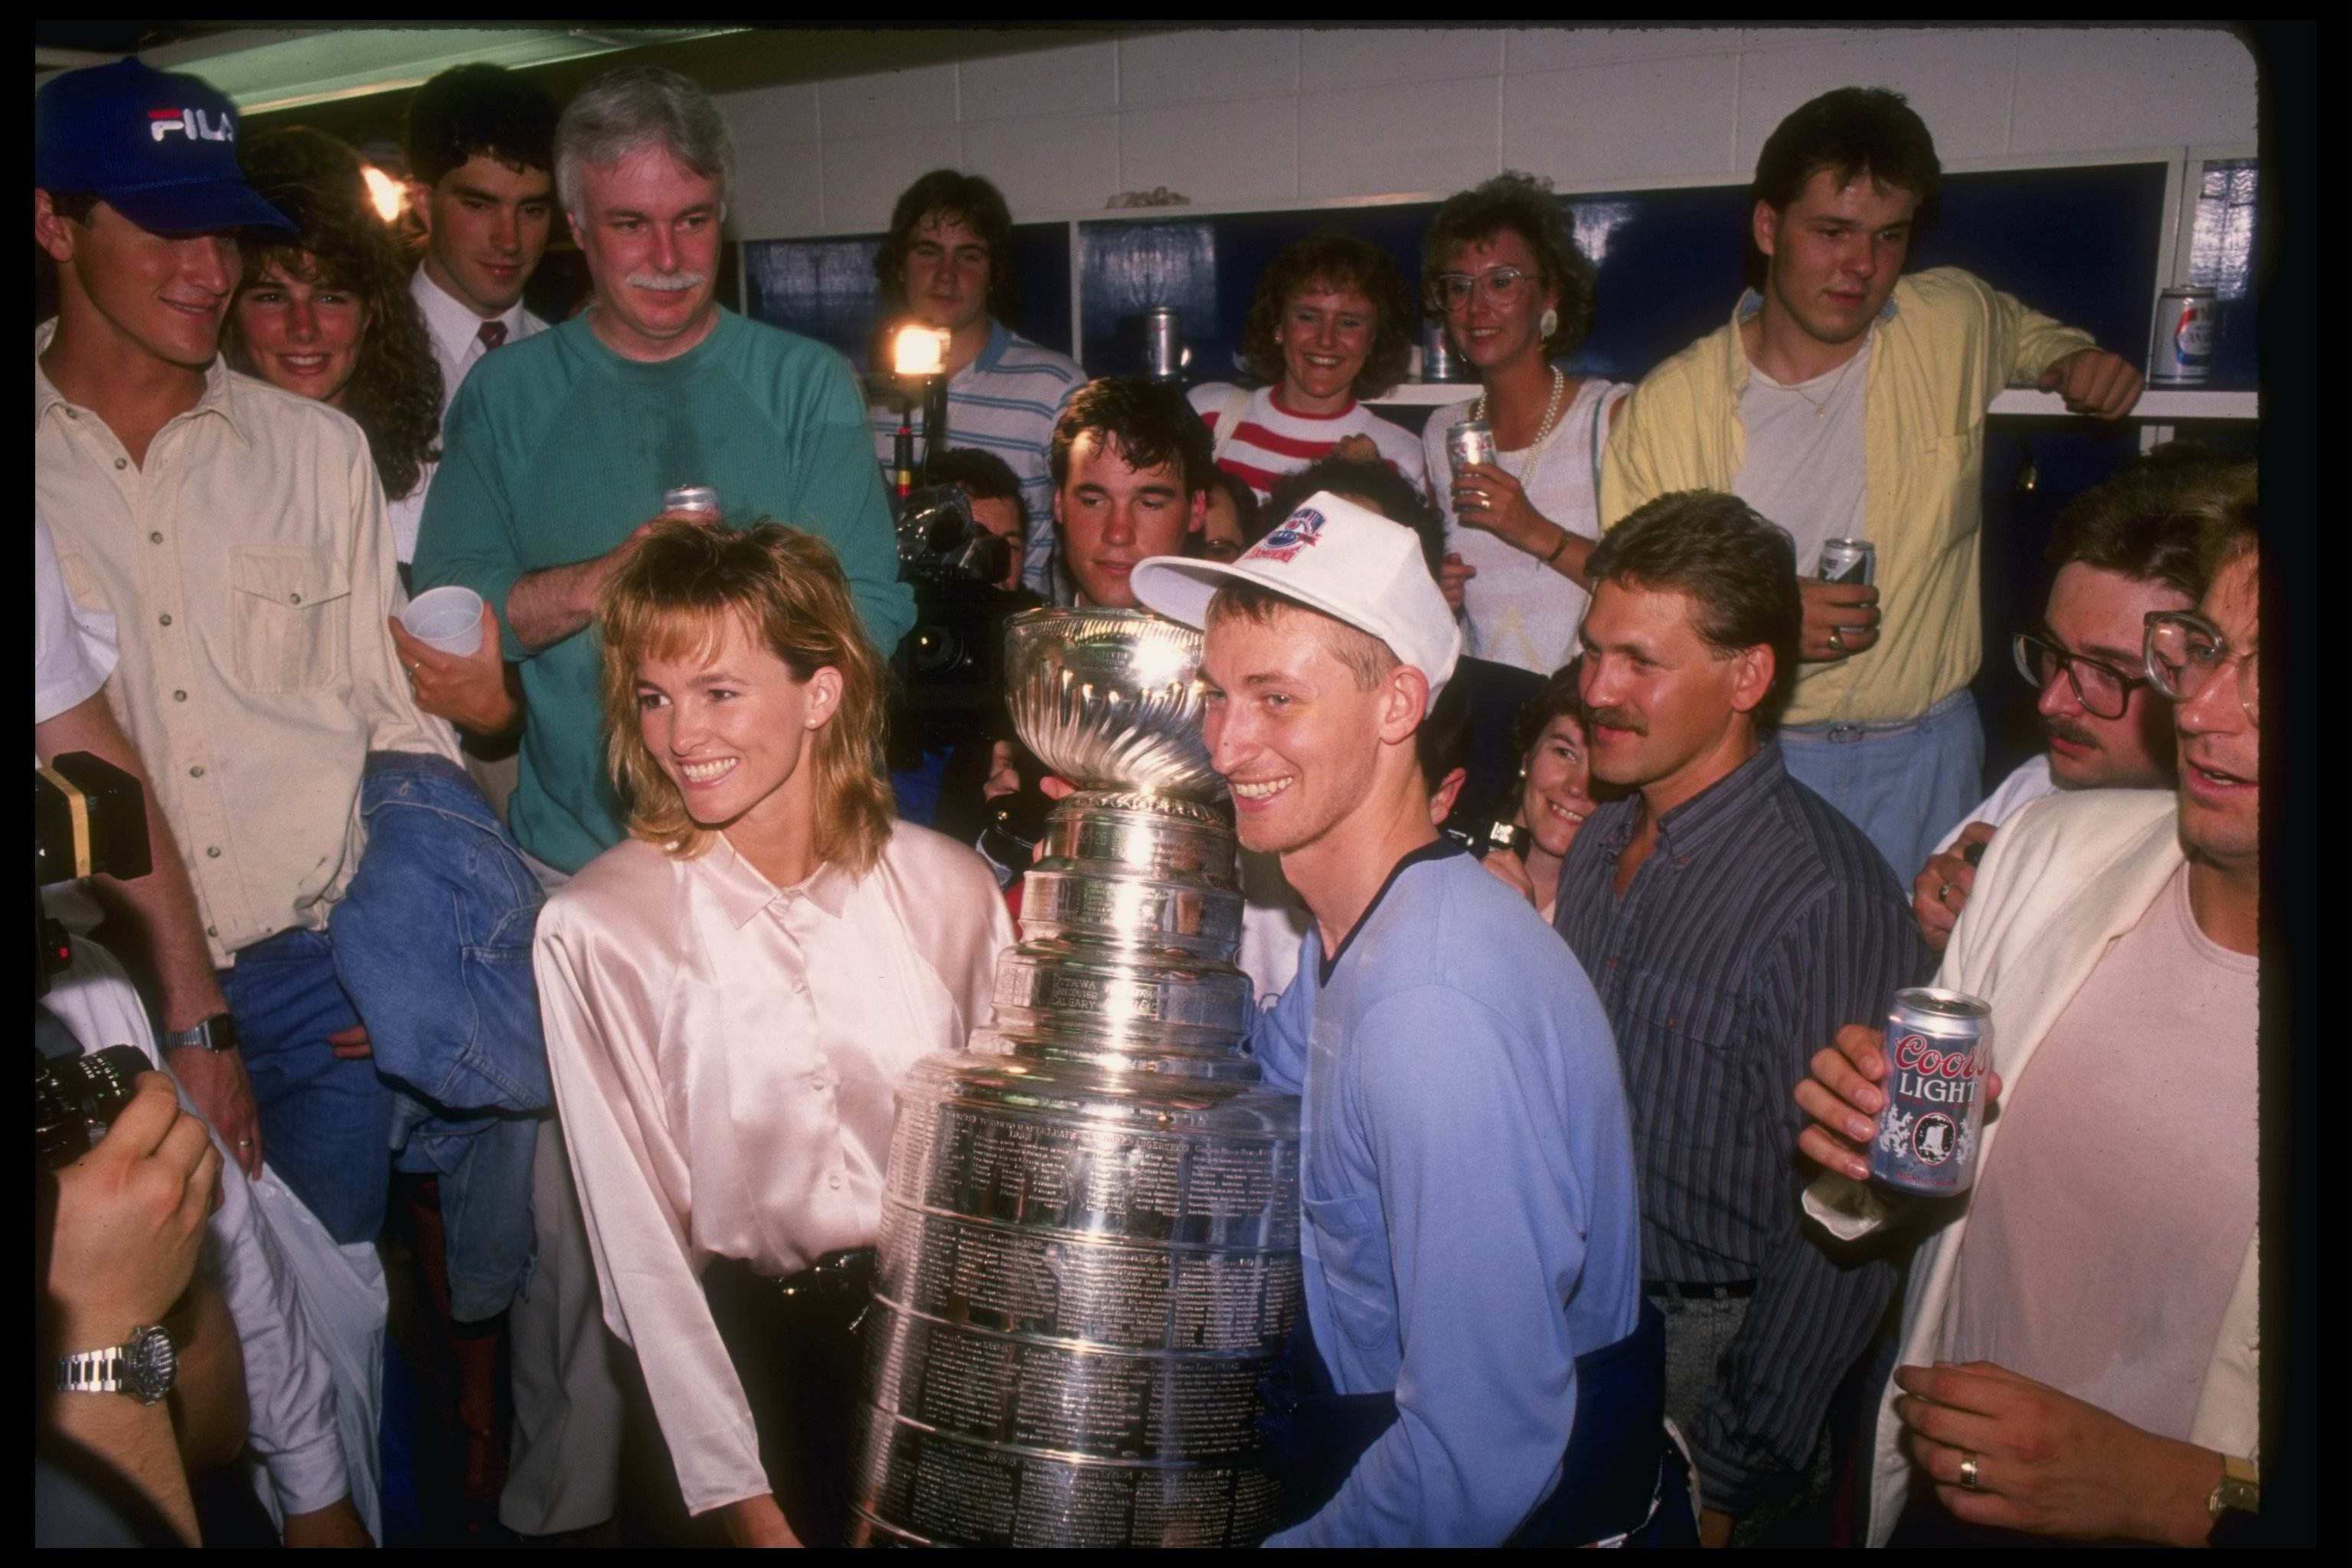 Wayne Gretzky as an Edmonton Oiler, holds the Cup